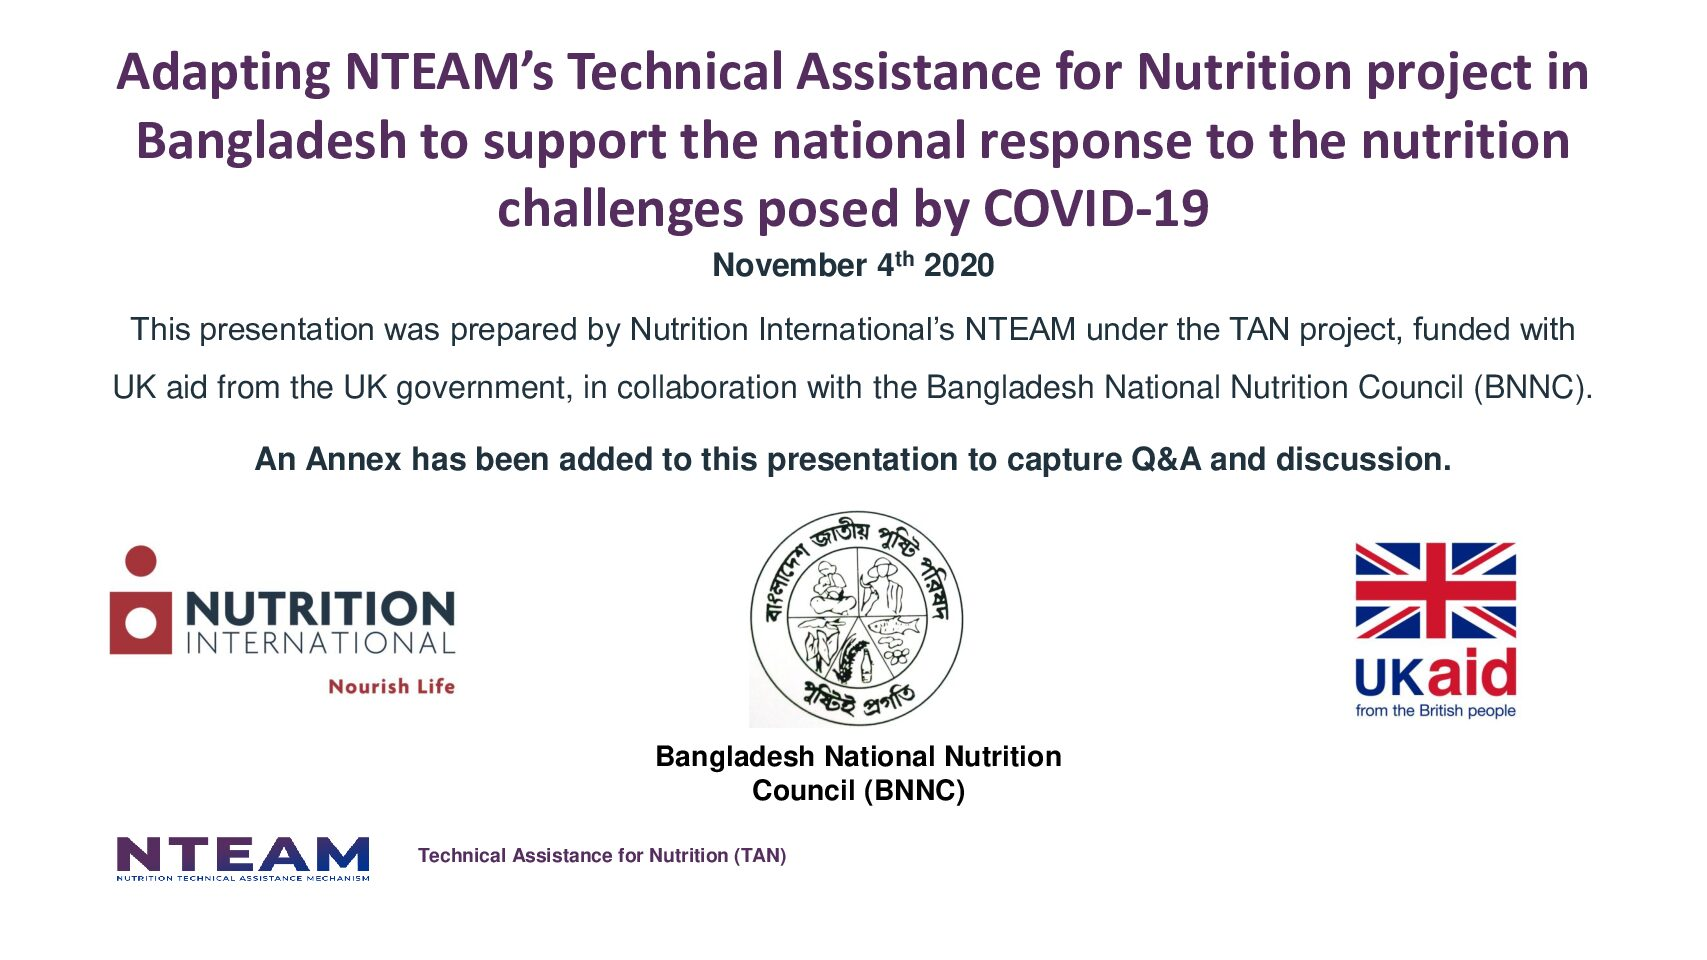 Adapting NTEAM's Technical Assistance for Nutrition project in Bangladesh to support the national response to the nutrition challenges posed by COVID-19 thumbnail